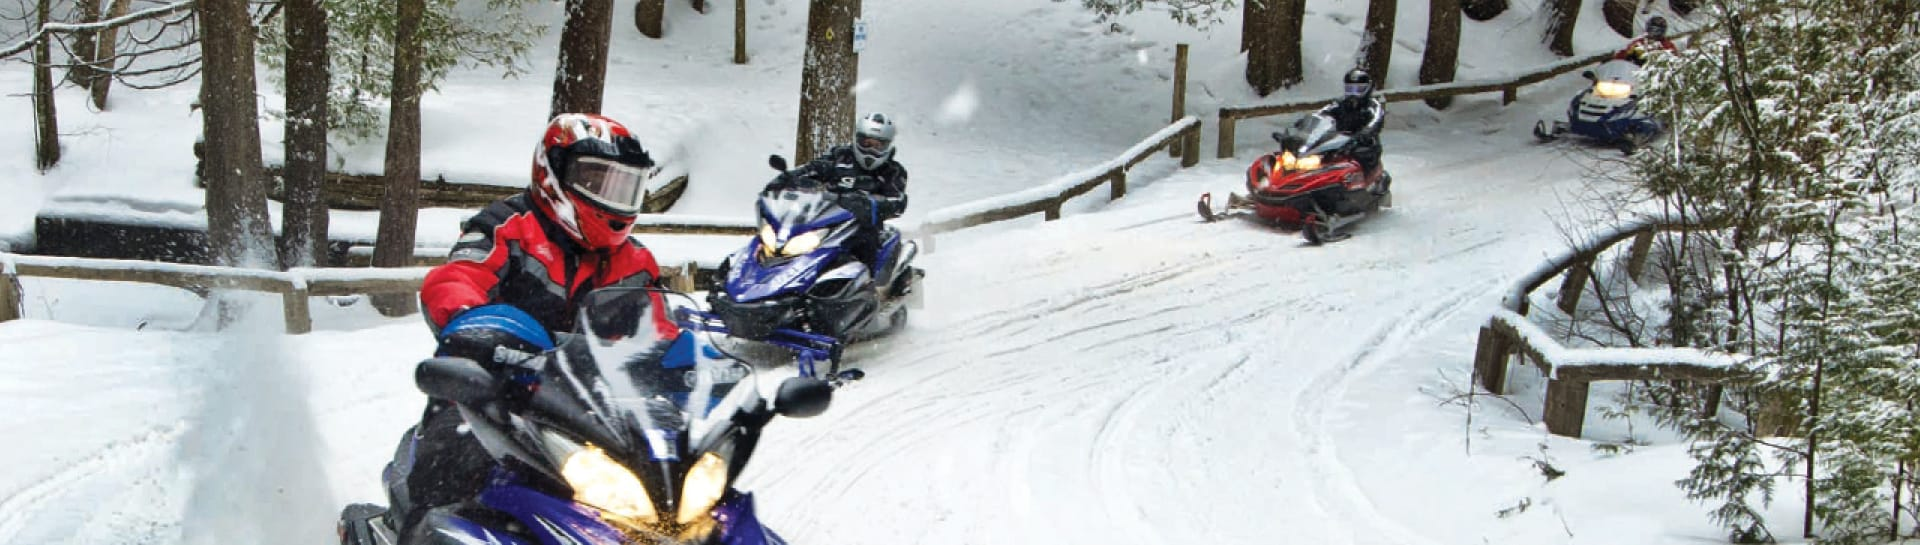 Group of 4 snowmobilers on winter trail through forested area